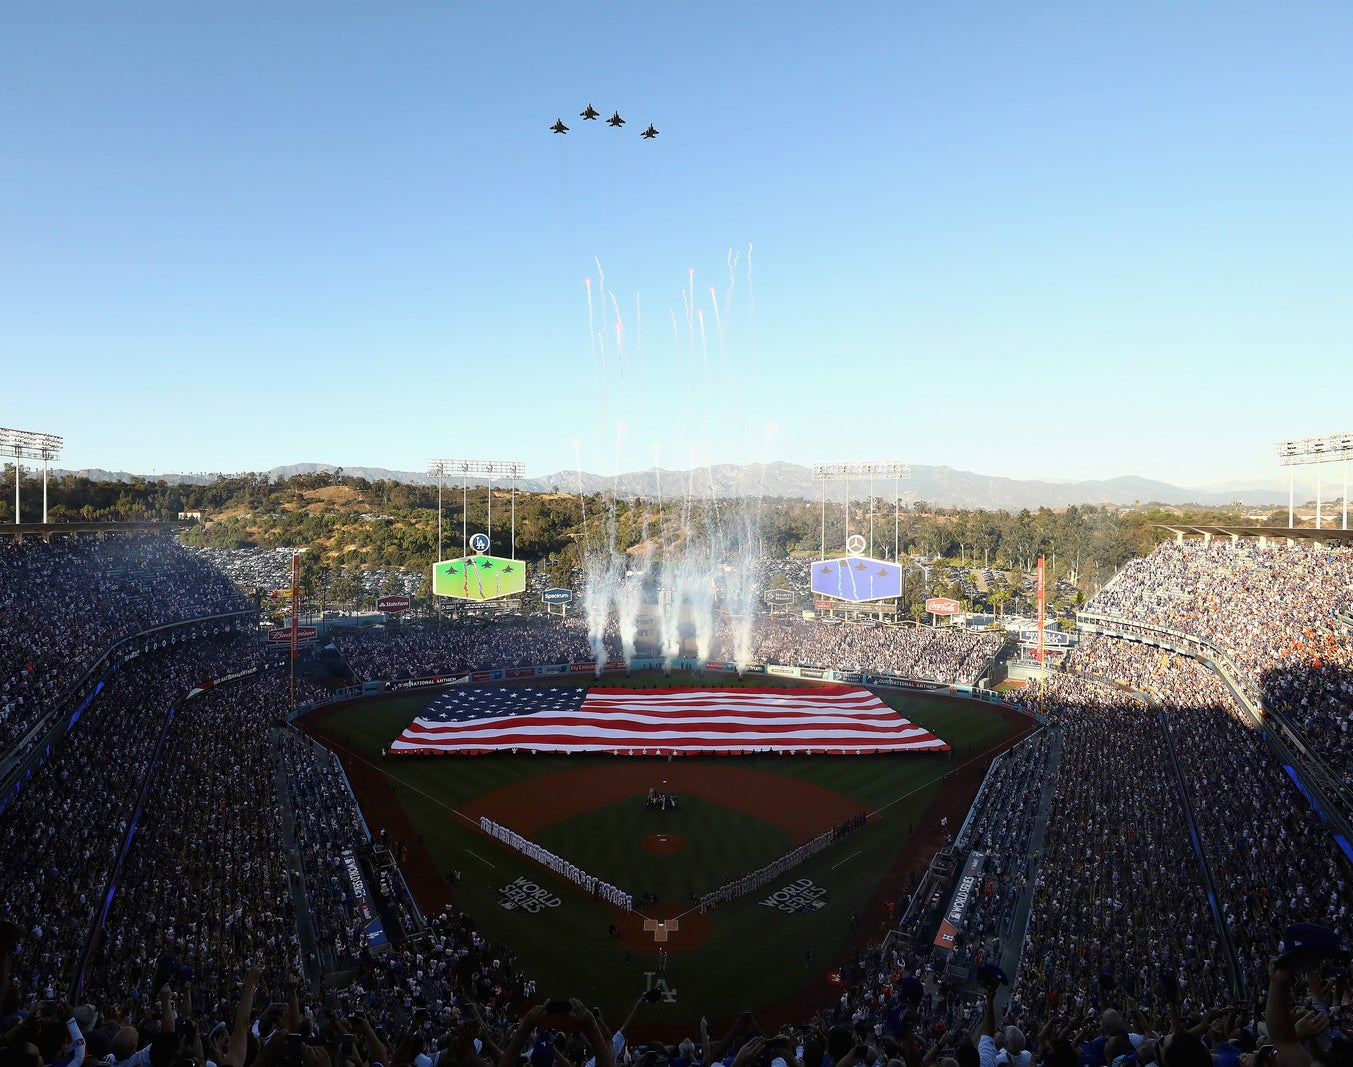 Military aircraft perform a flyover before Game 1 of the 2017 World Series between the Houston Astros and the Los Angeles Dodgers at Dodger Stadium on Oct. 24.